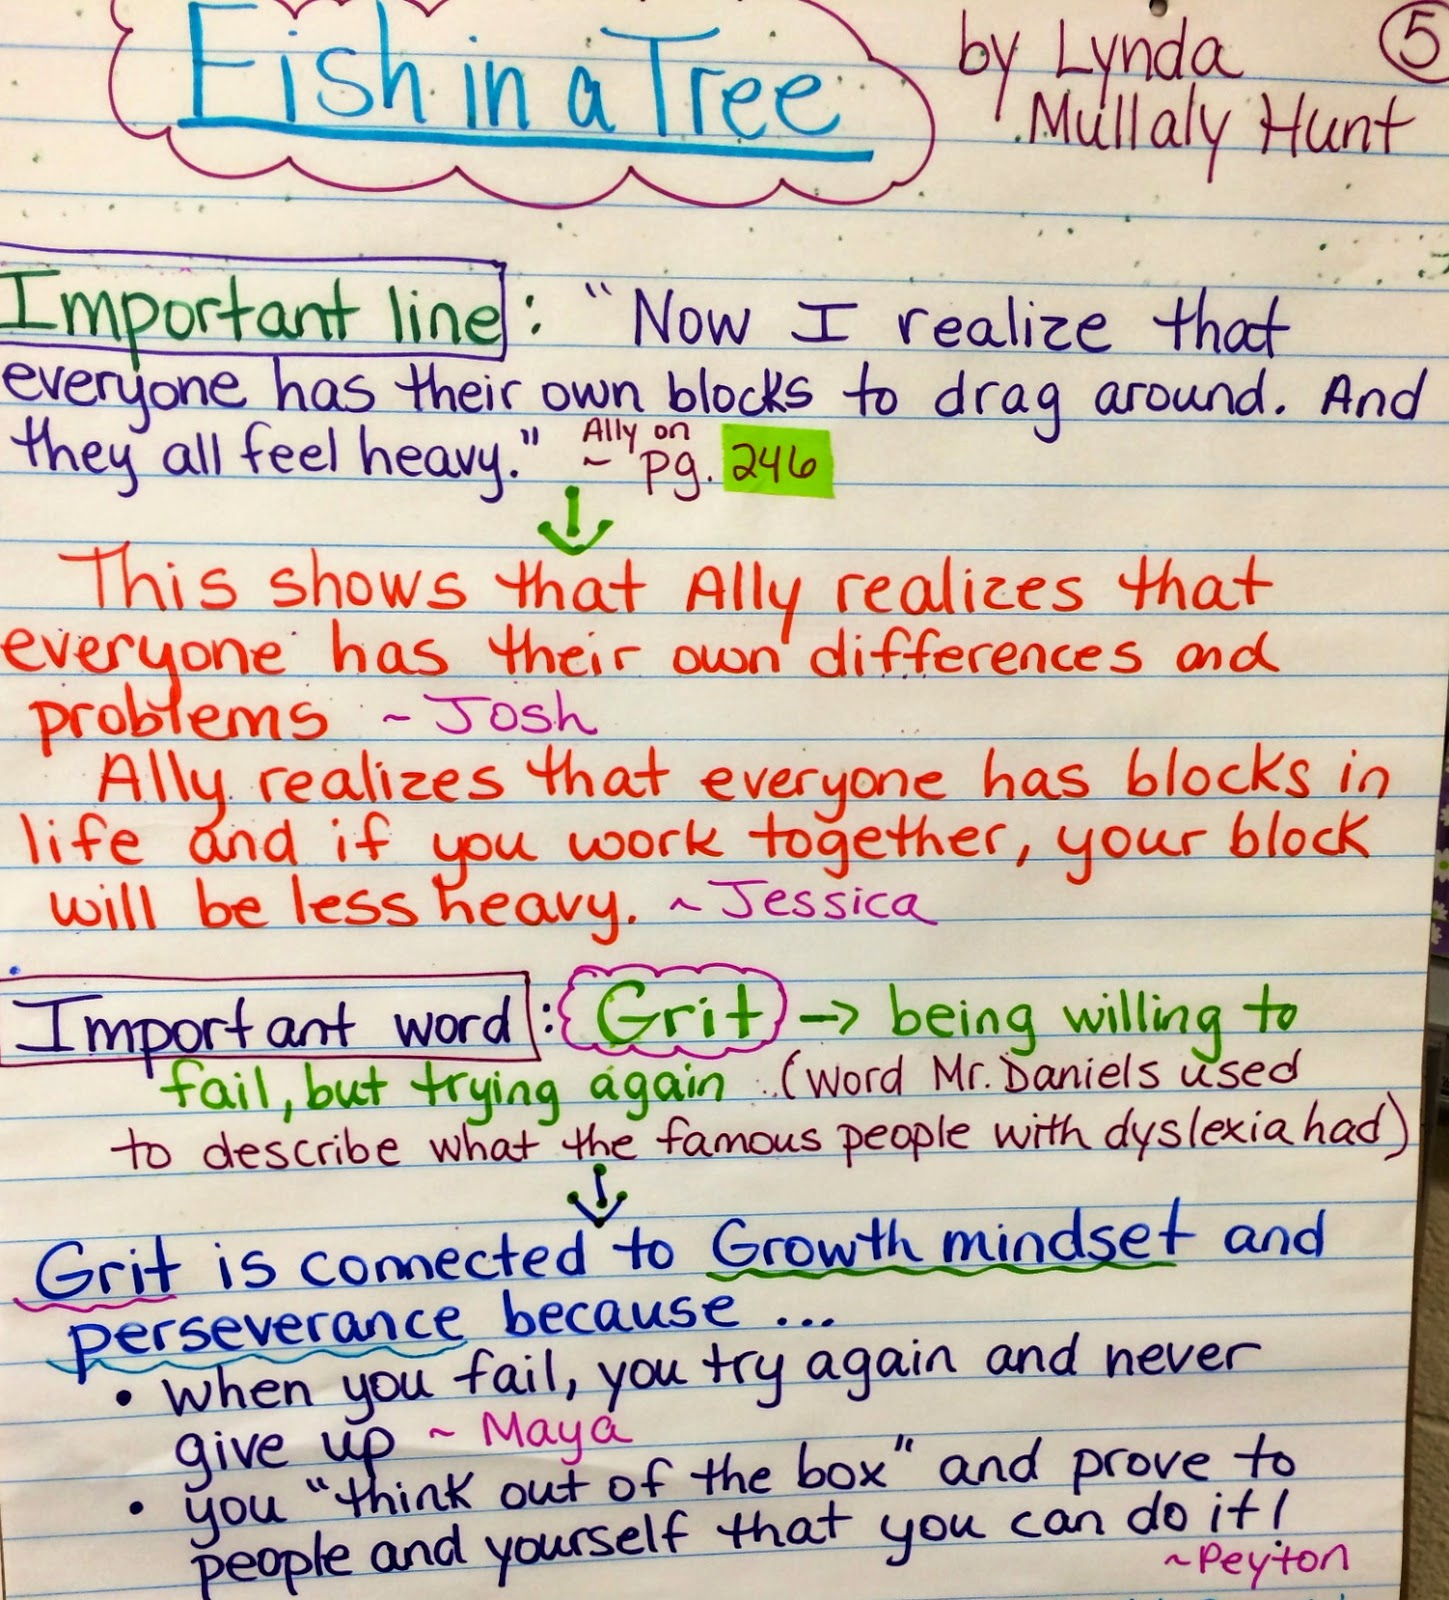 Two reflective teachers discussing growth mindset early for Fish in a tree by lynda mullaly hunt